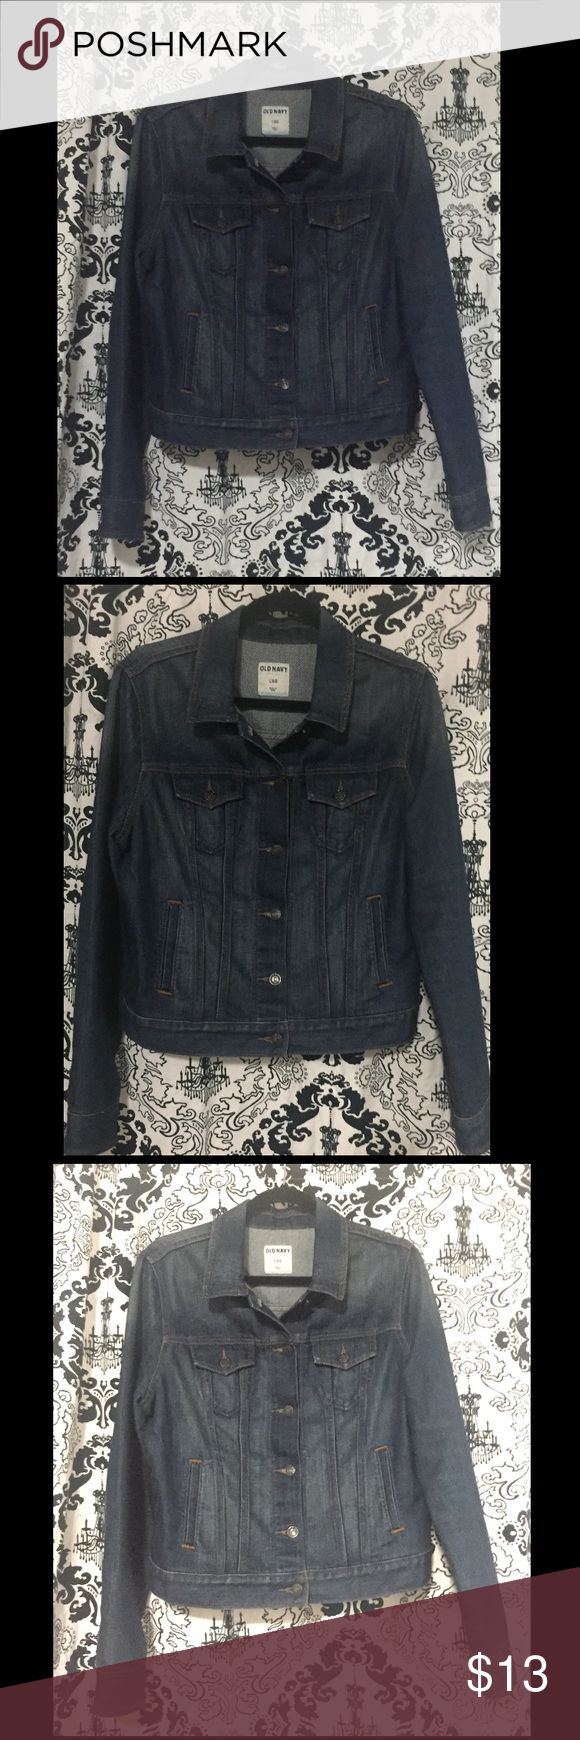 Old navy denim jacket. Old navy denim jacket.  Worn once. Size:L cropped Old Navy Jackets & Coats Jean Jackets